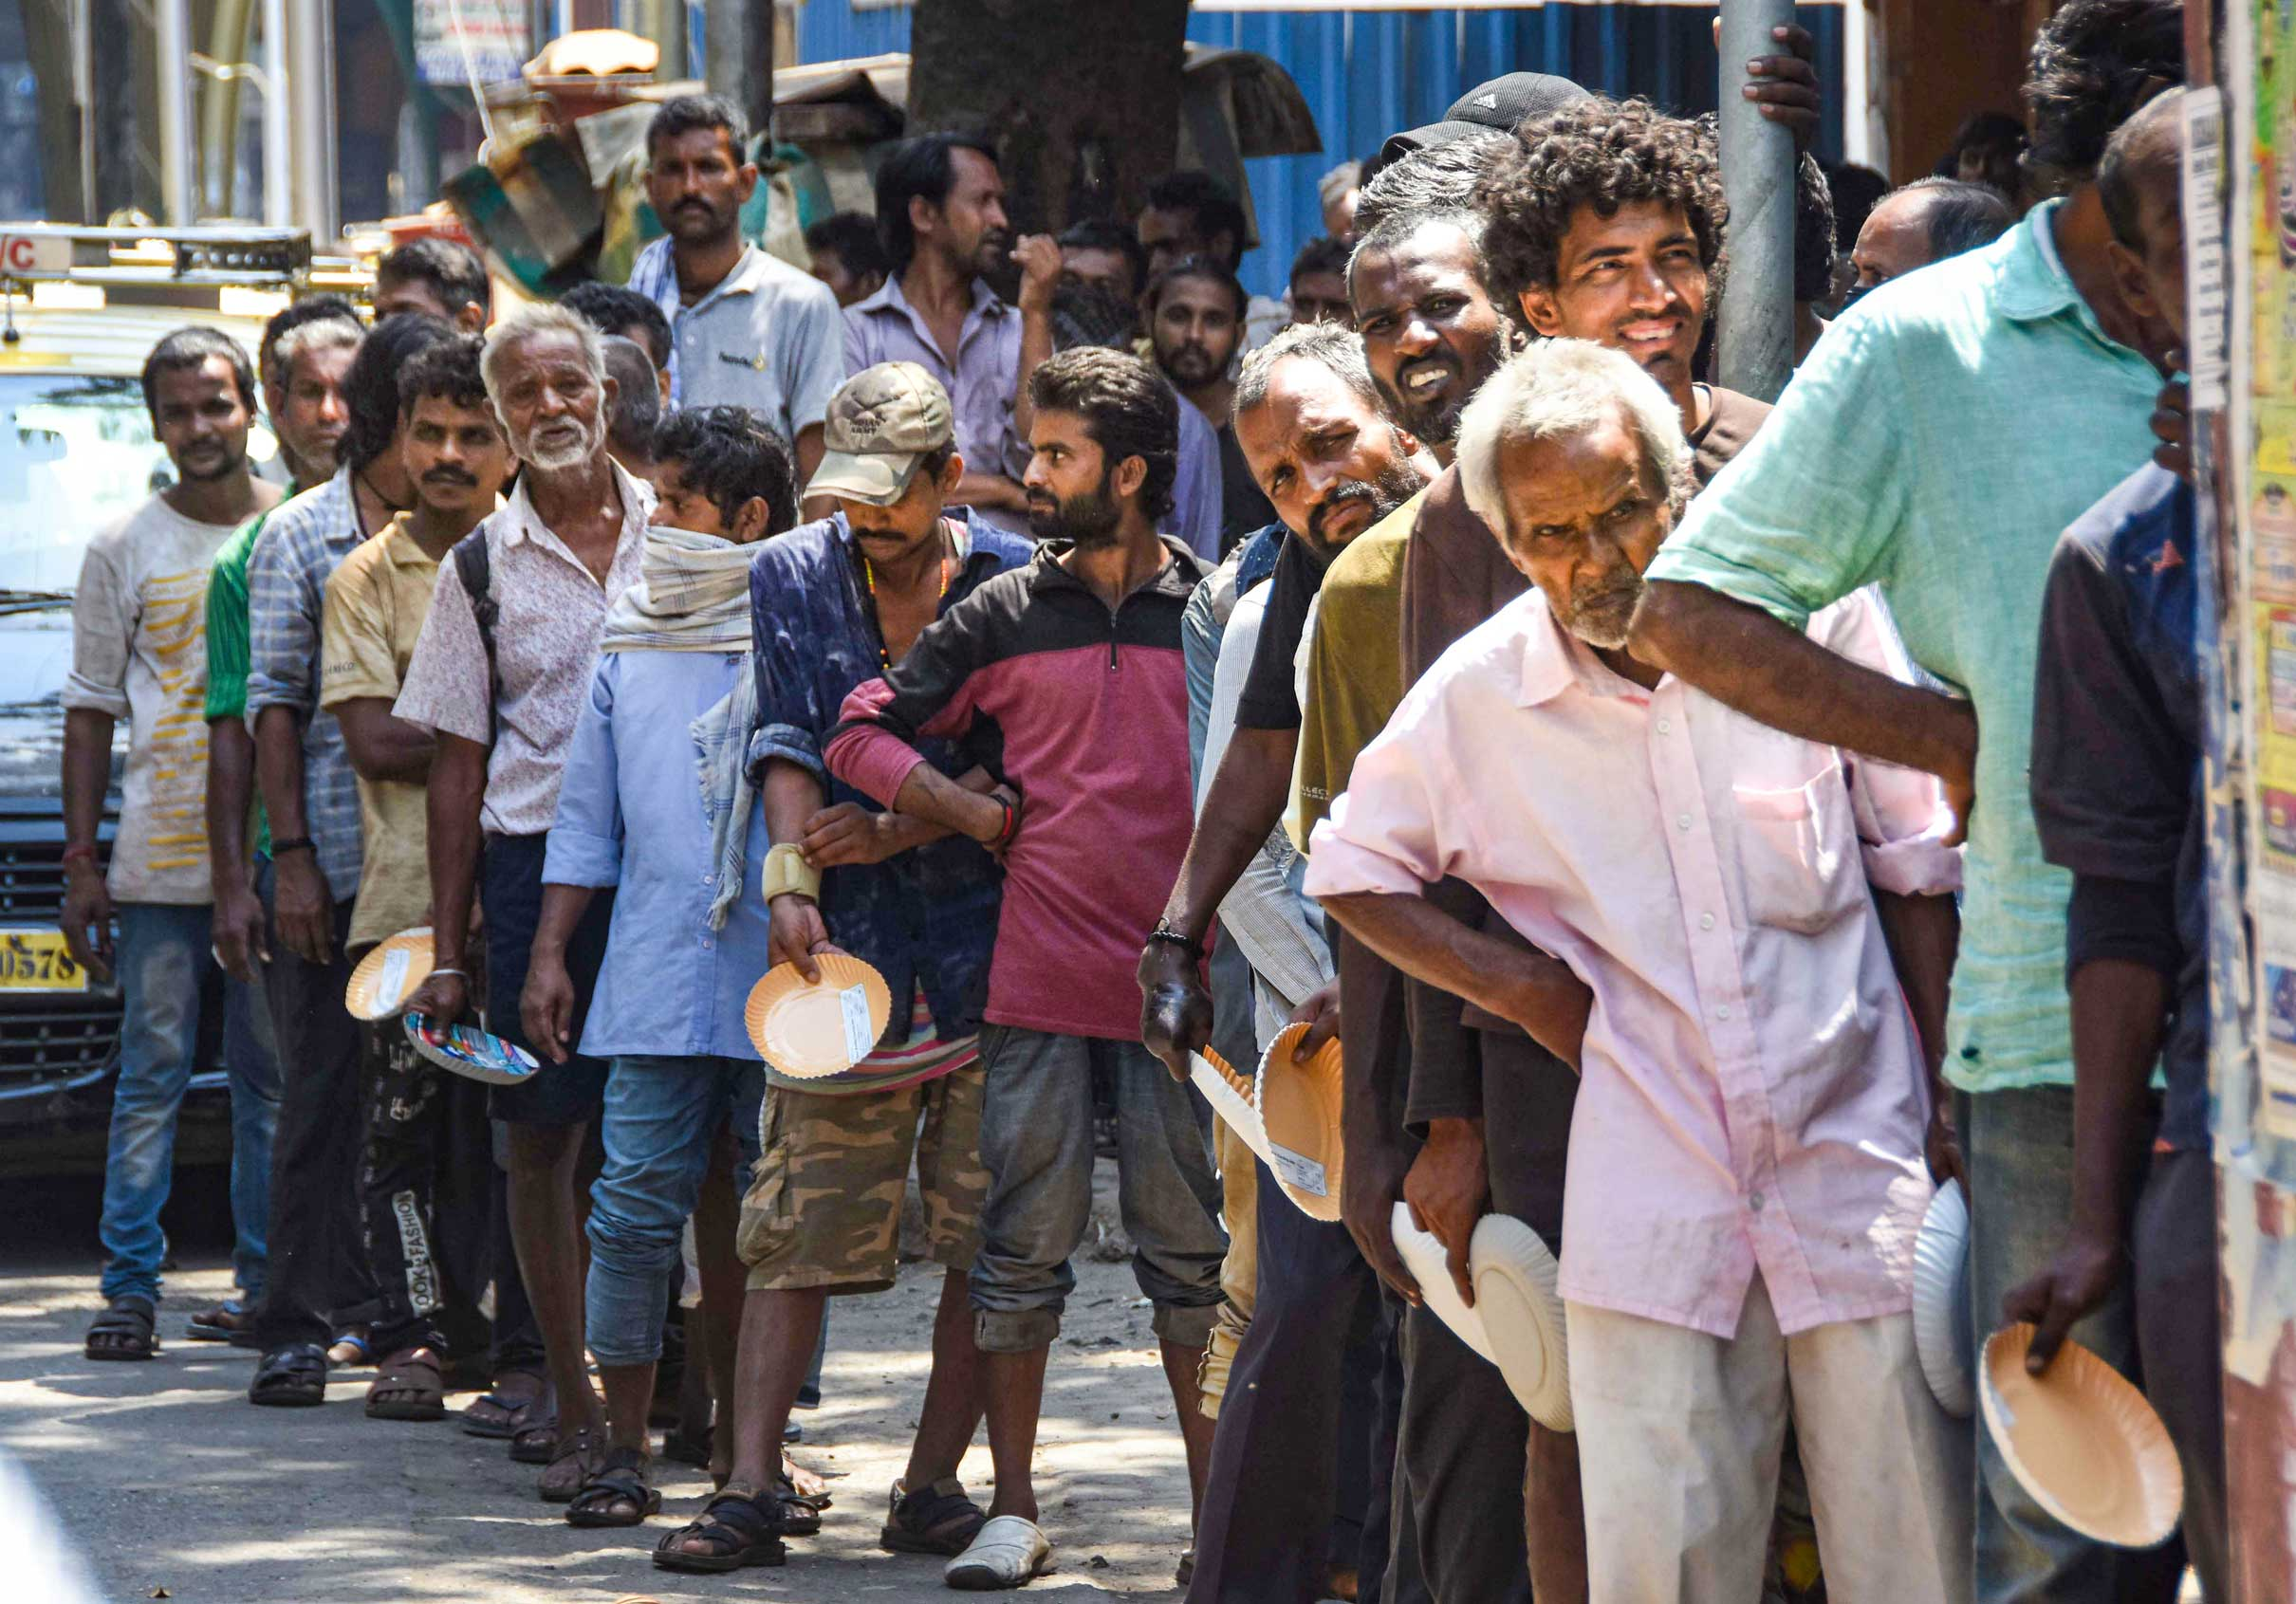 Volunteers of an NGO distribute food to the needy during the coronavirus lockdown in Mumbai on Tuesday. The FAO has put out a list of questions and answers related to the impact of Covid-19 on food availability and disruption in the supply chain.